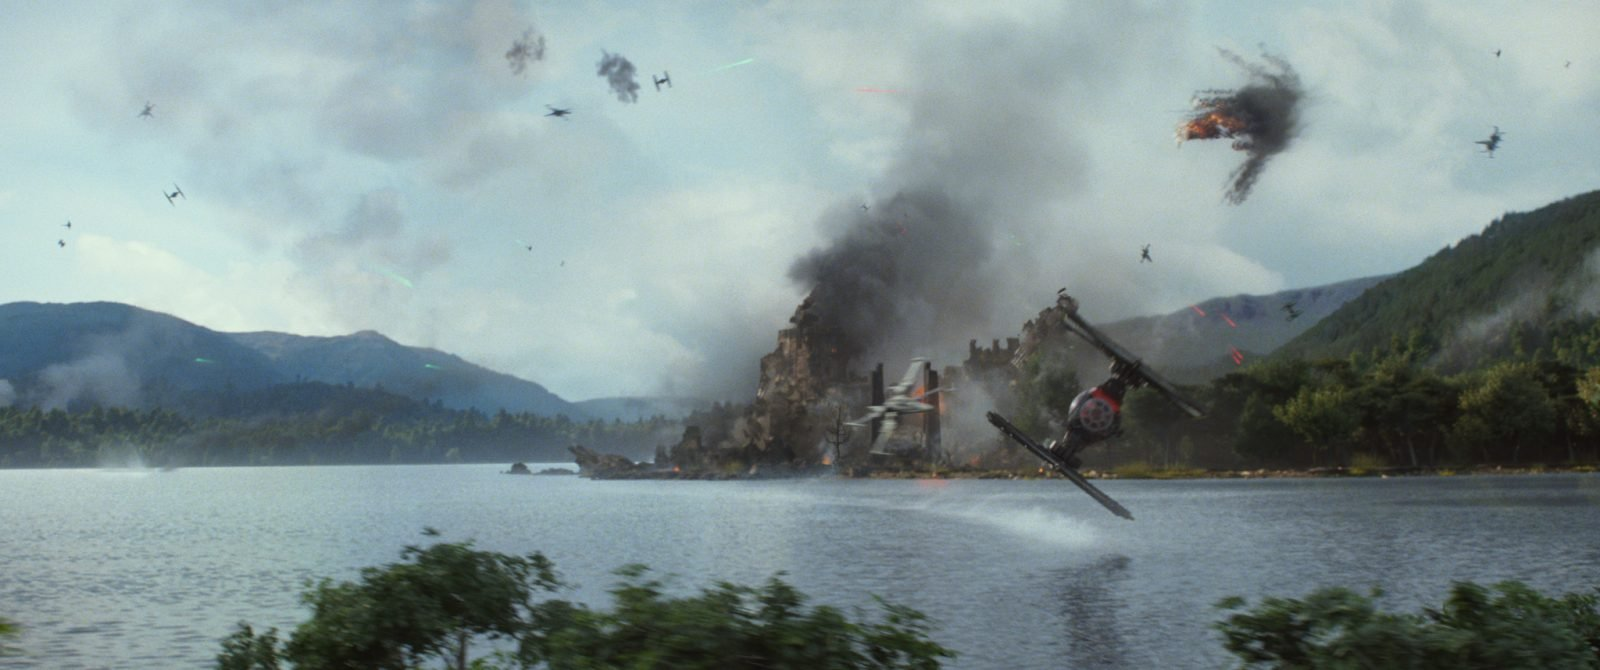 Star Wars VII The Force Awakens 7 - Tie Fighter above water